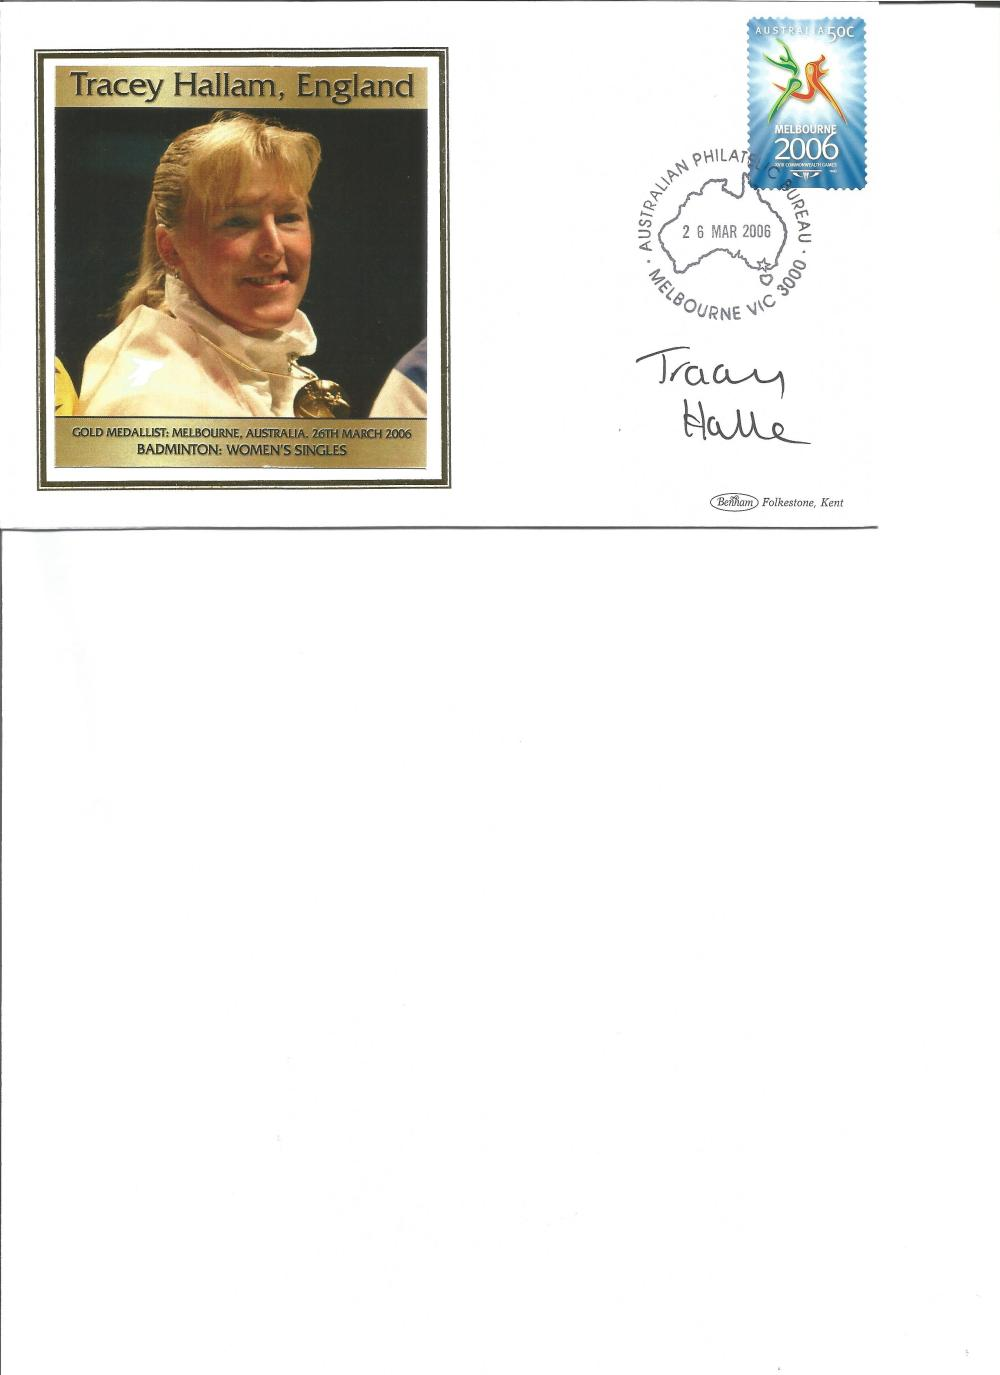 Tracey Hallam signed 2006 Australian Commonwealth Games FDC. Badminton gold medallist. Good